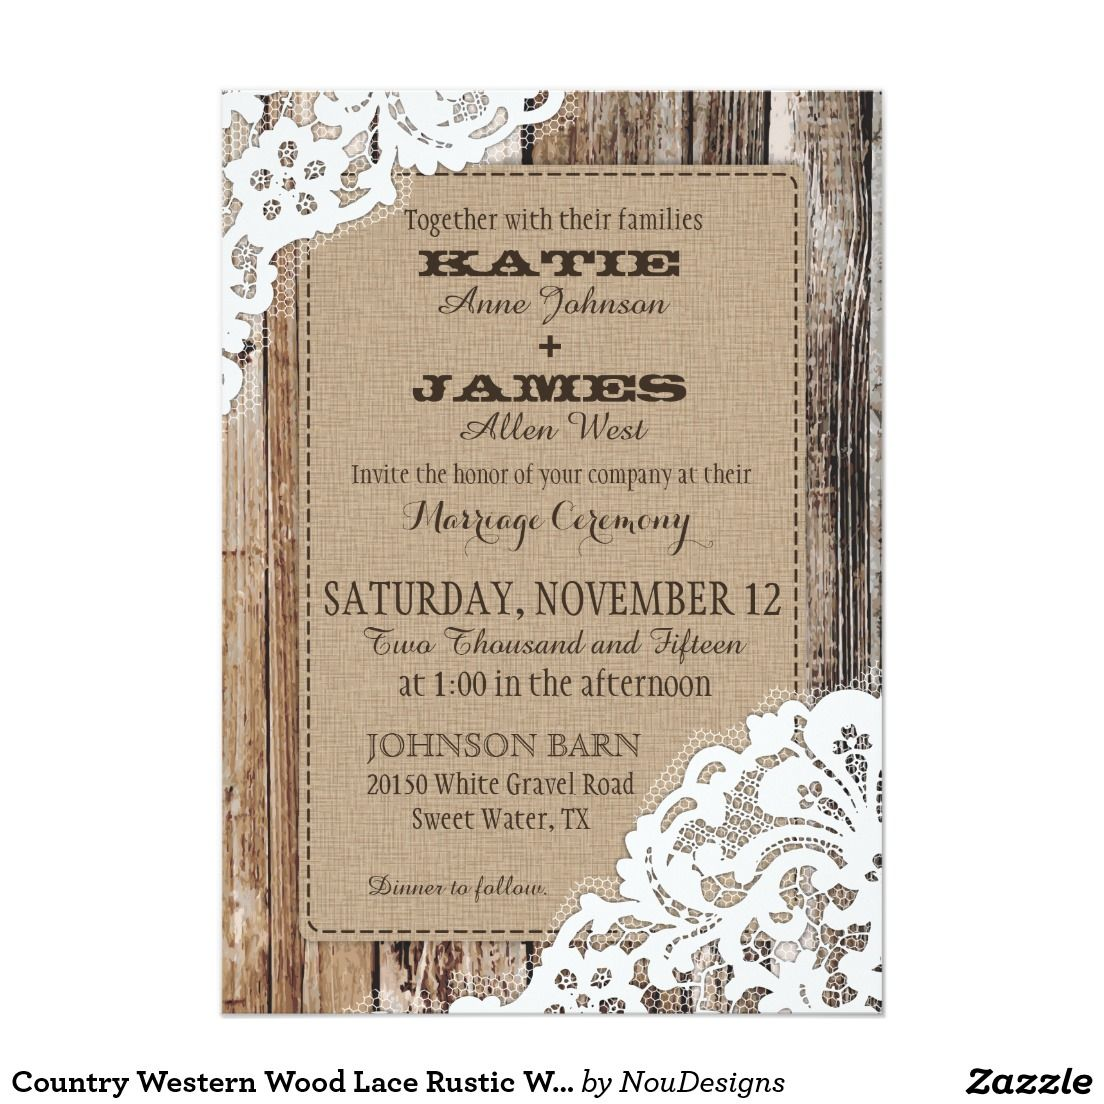 Country Western Wood Lace Rustic Wedding | Country Wedding ...